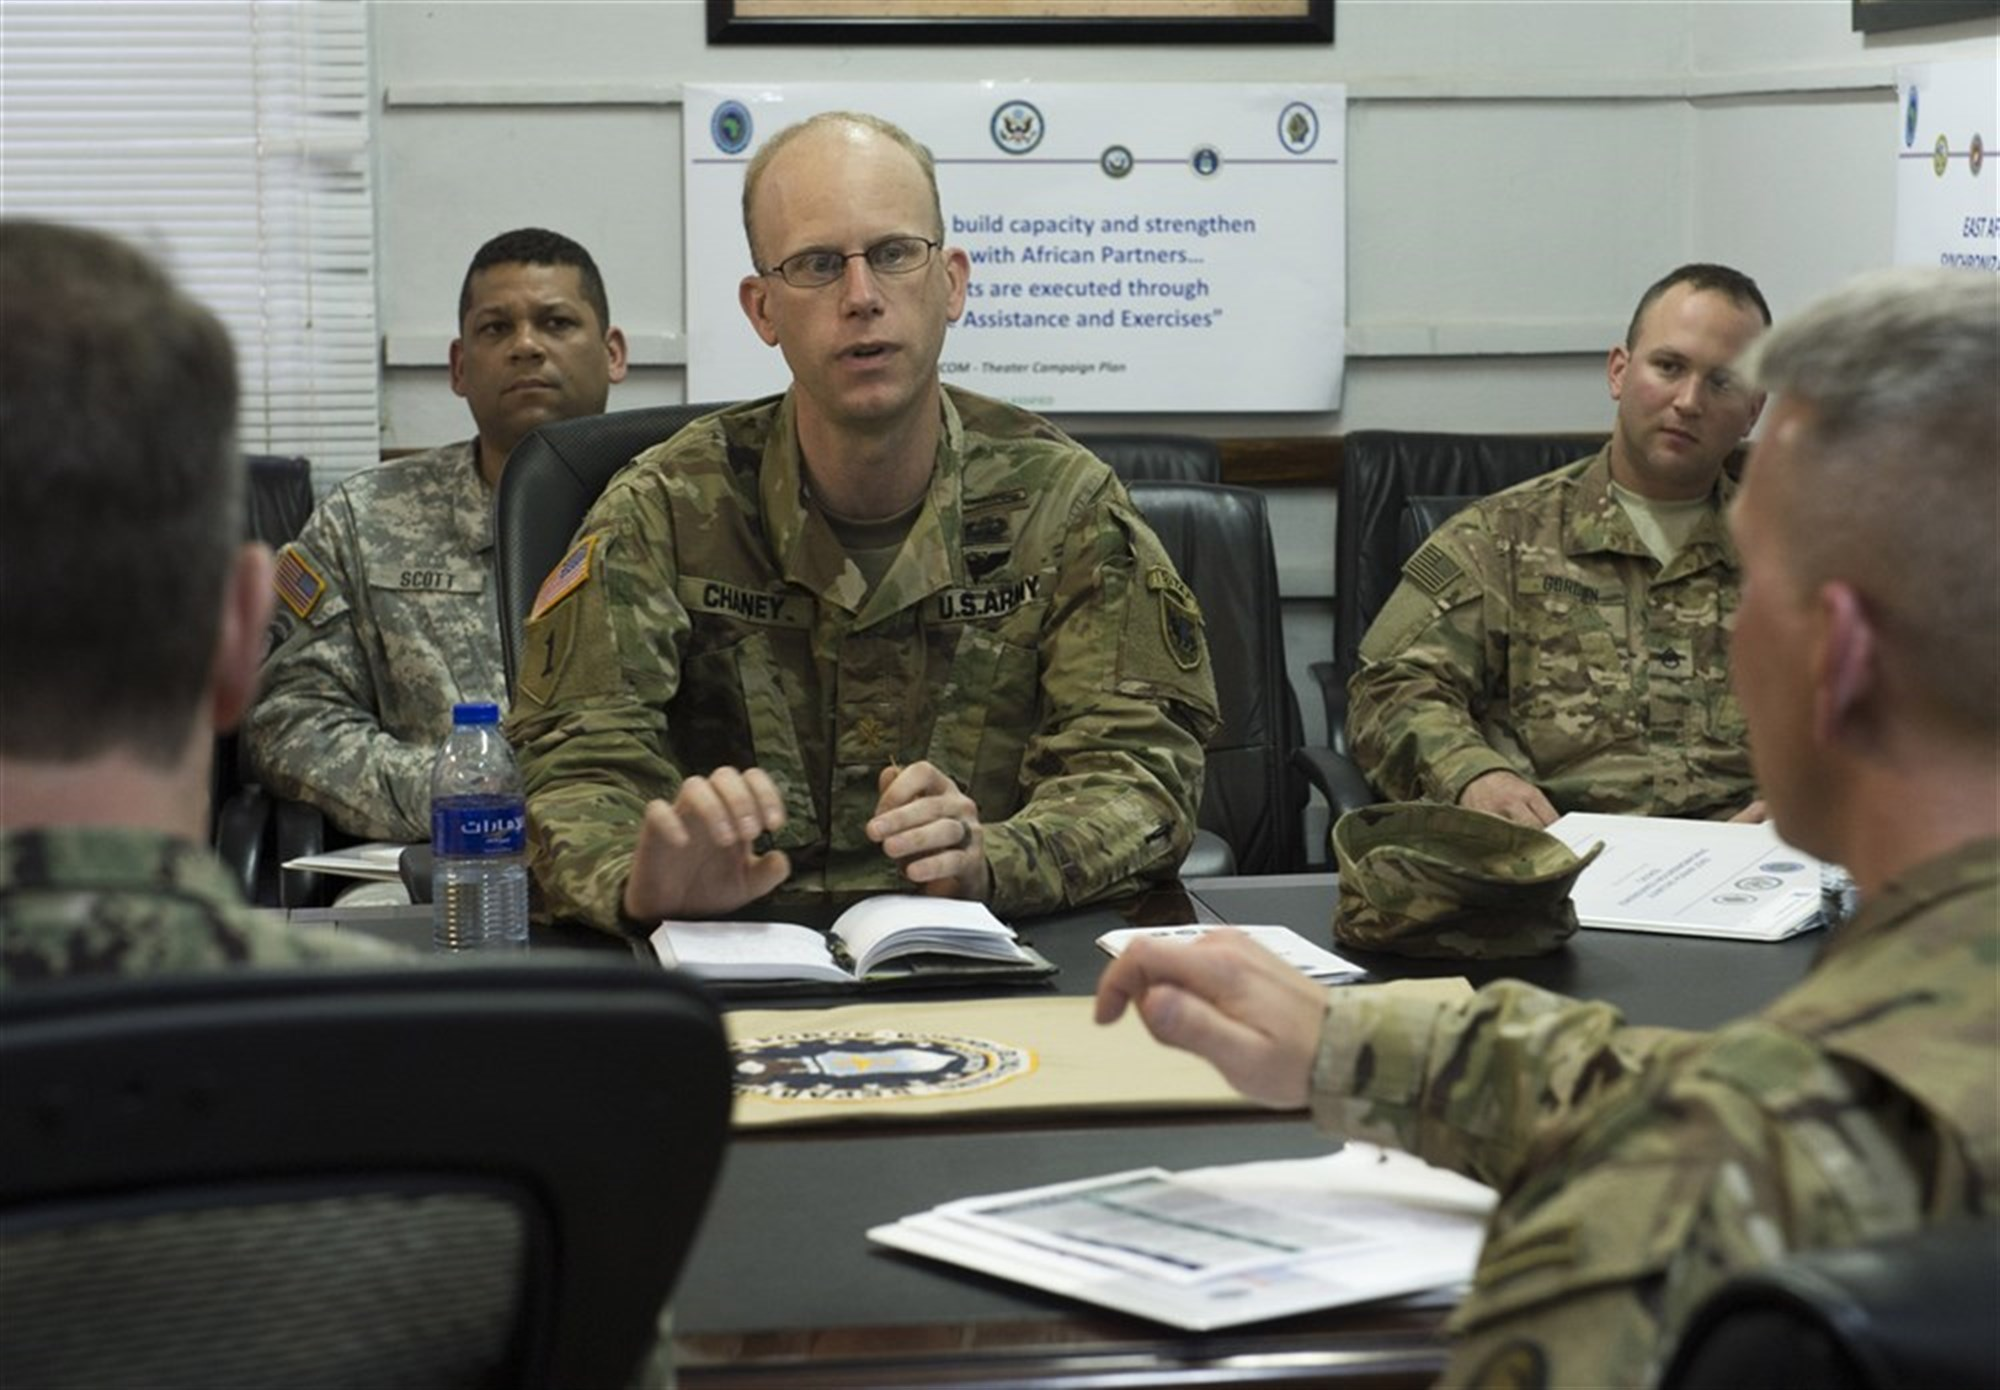 Military members in a working group discuss Africa Contingency Operations Training and Assistance during the East Africa Security Synchronization Conference Jan. 21, 2016, at Camp Lemonnier, Djibouti. More than 70 U.S. embassy representatives from each East African country and organizations including the African Union, U.S. Africa Command, and AFRICOM components attended the event to kick start the process of synchronizing and prioritizing all activities in East Africa.